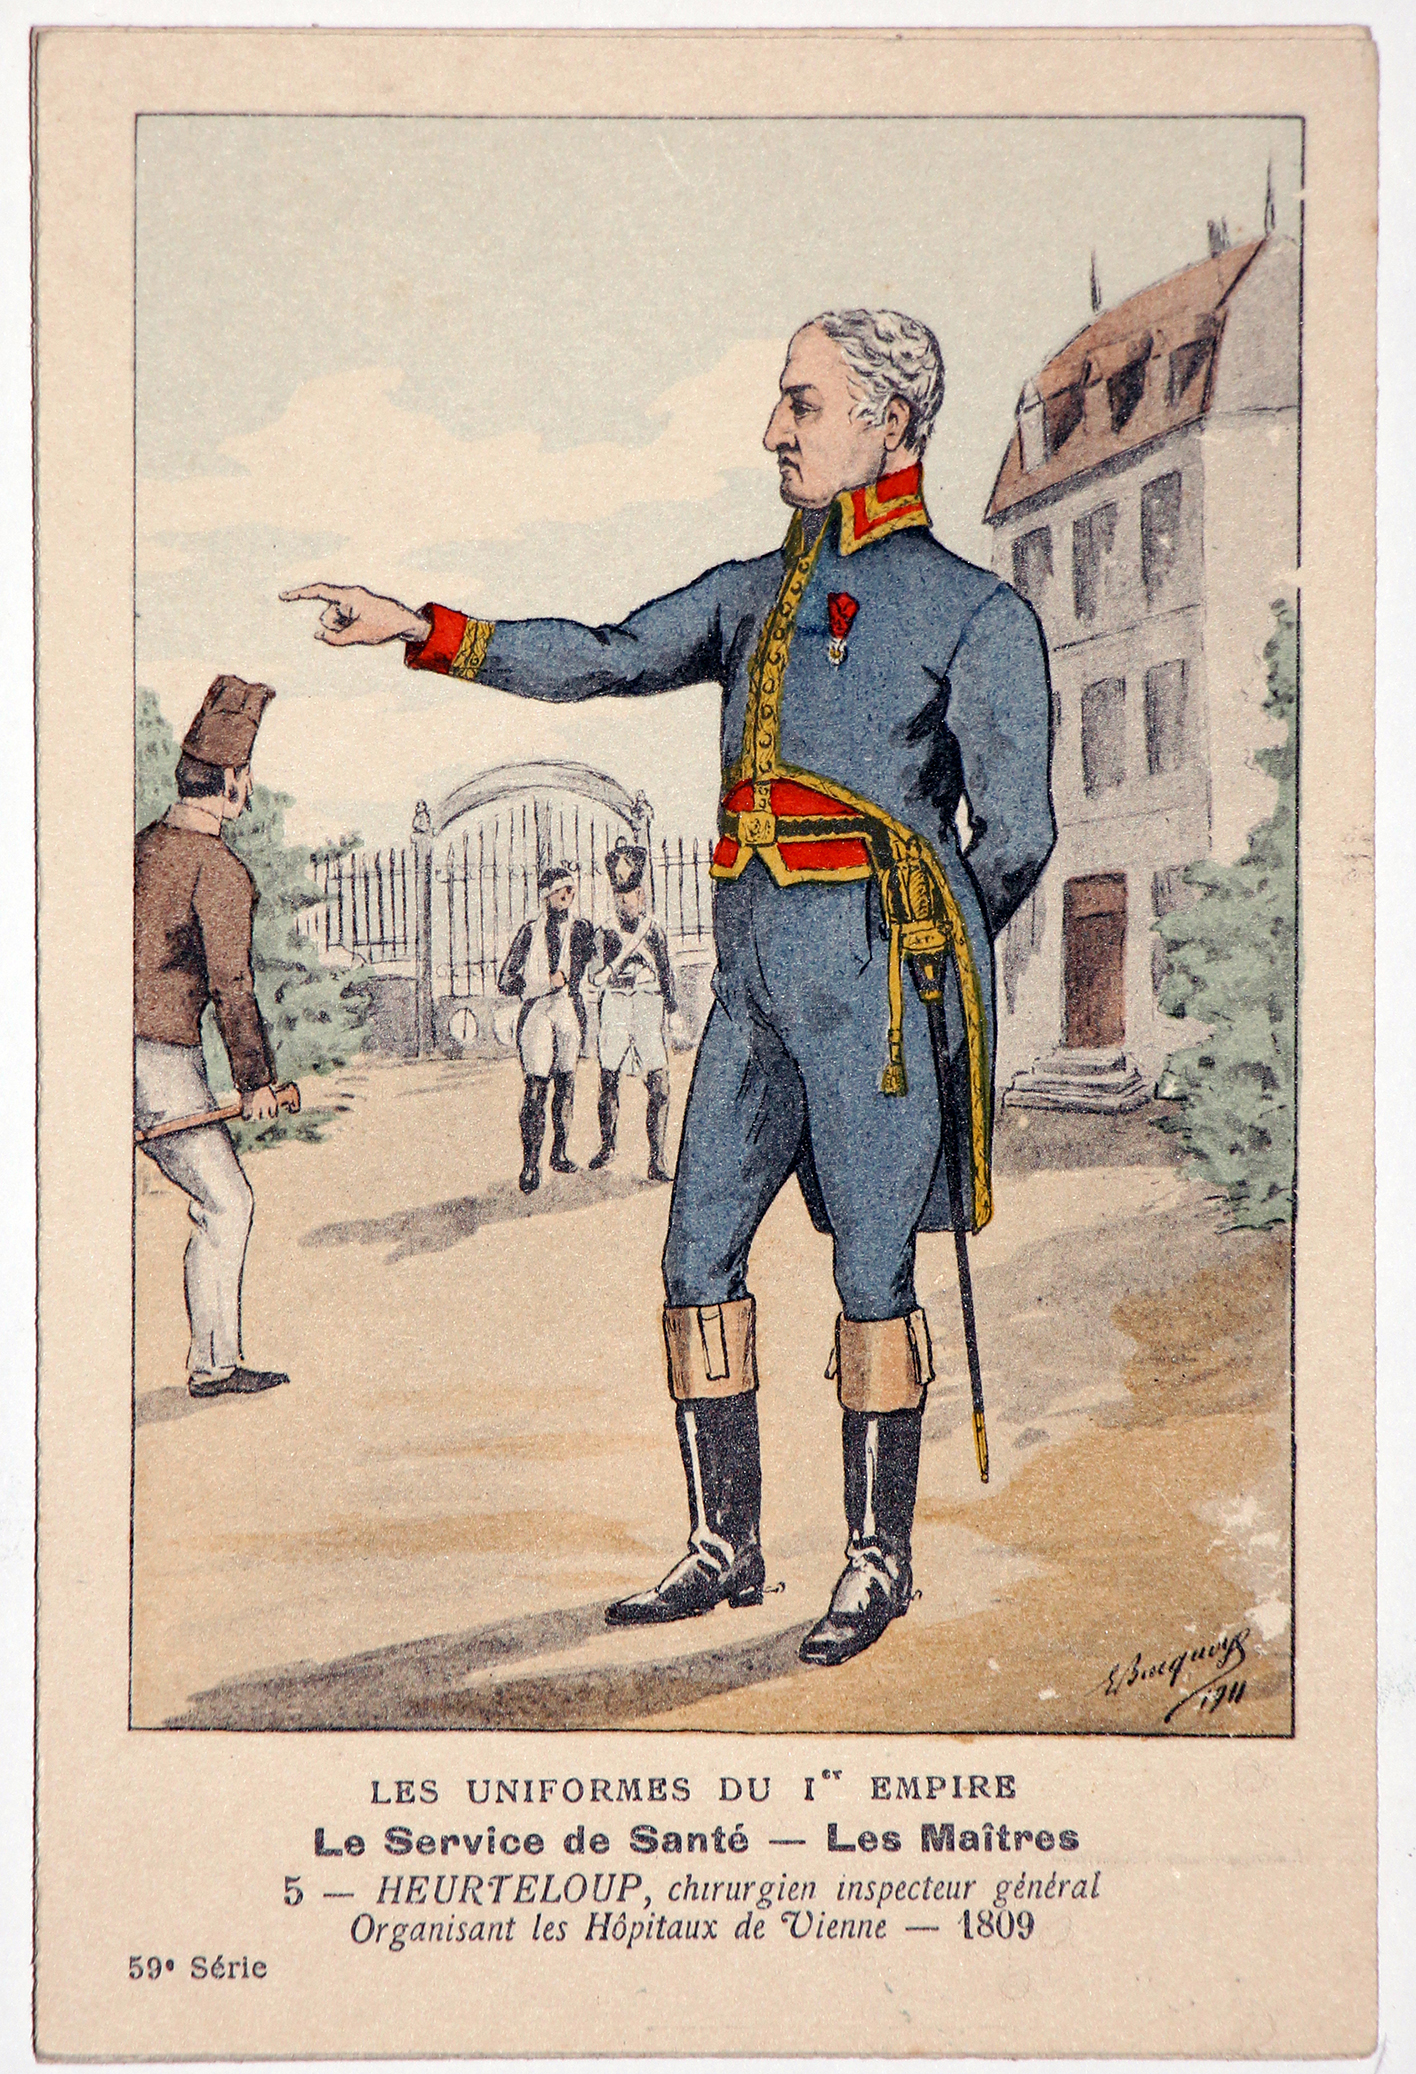 Carte Bucquoy - Les Uniformes du 1er Empire - Série 59 - Carte 5